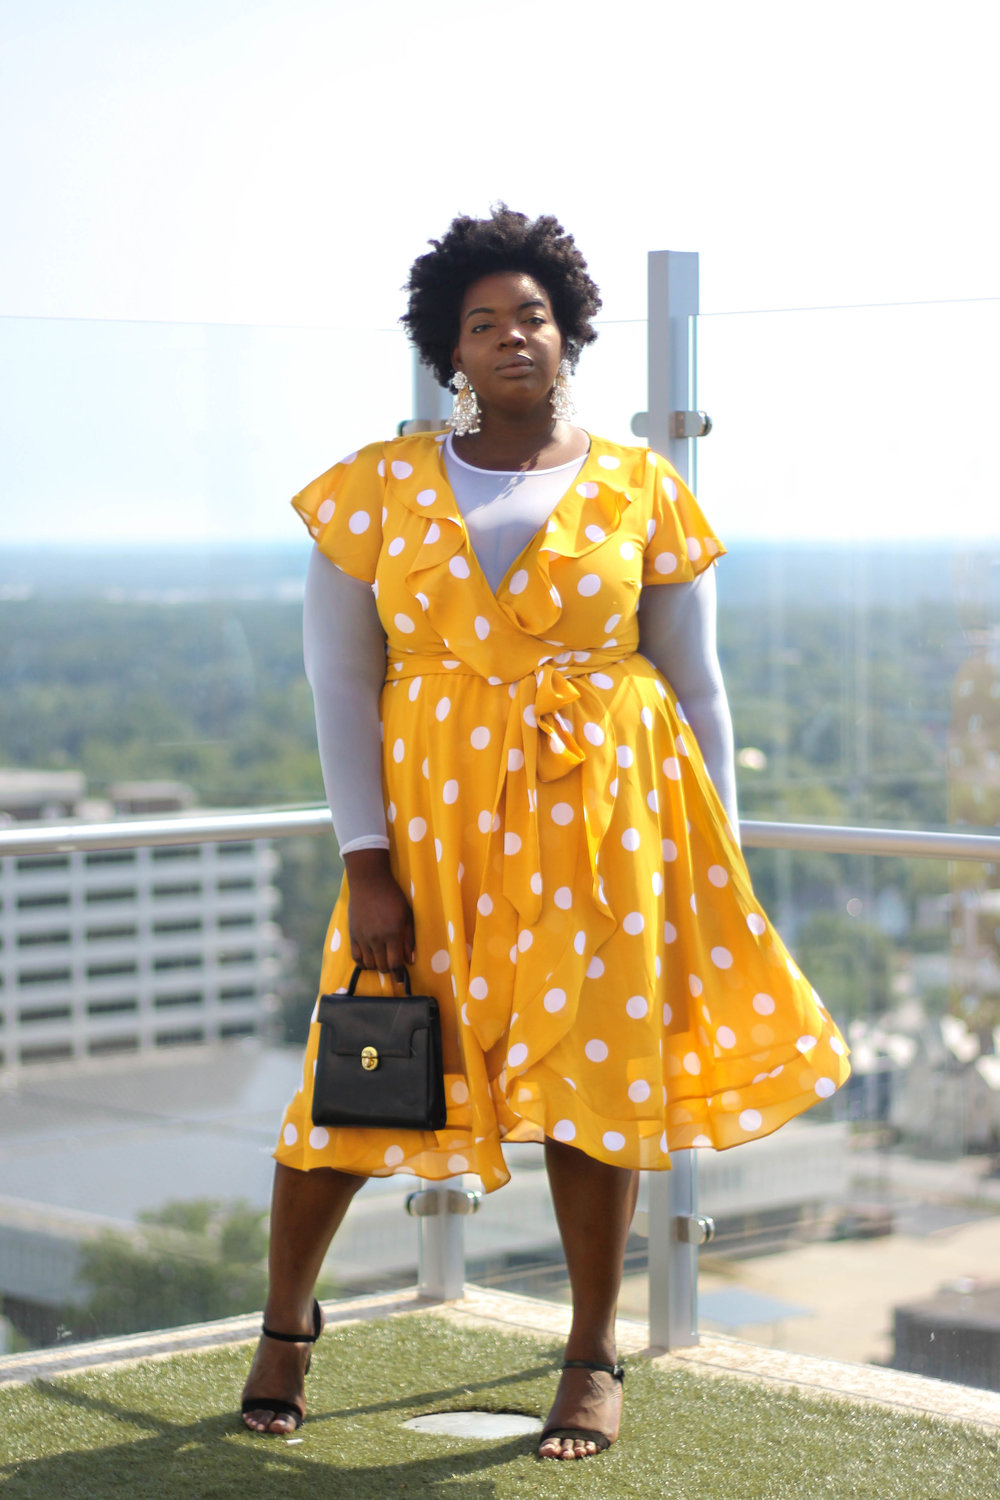 valerie-eguavoen-on-a-curve-plus-size-girls-lane-bryant-polka-dot-8040.jpg